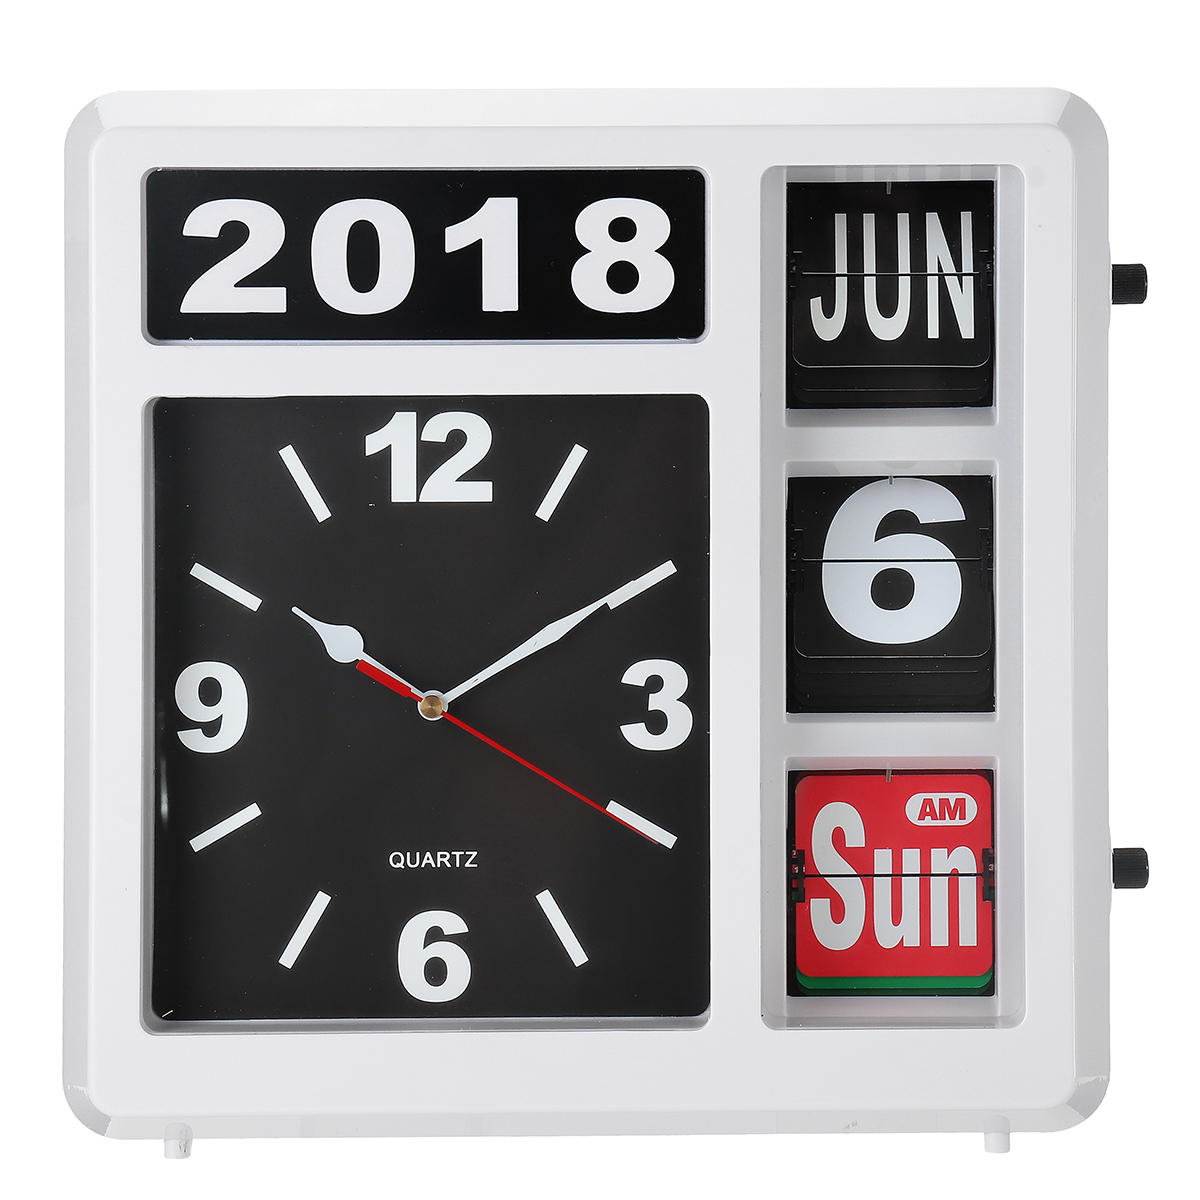 Flip Clock Creative Automatic Flip Desktop Clock For Gift Or Art Home And Office Decorative Novelty Table Clock Newest Design Creative Technology Decoration